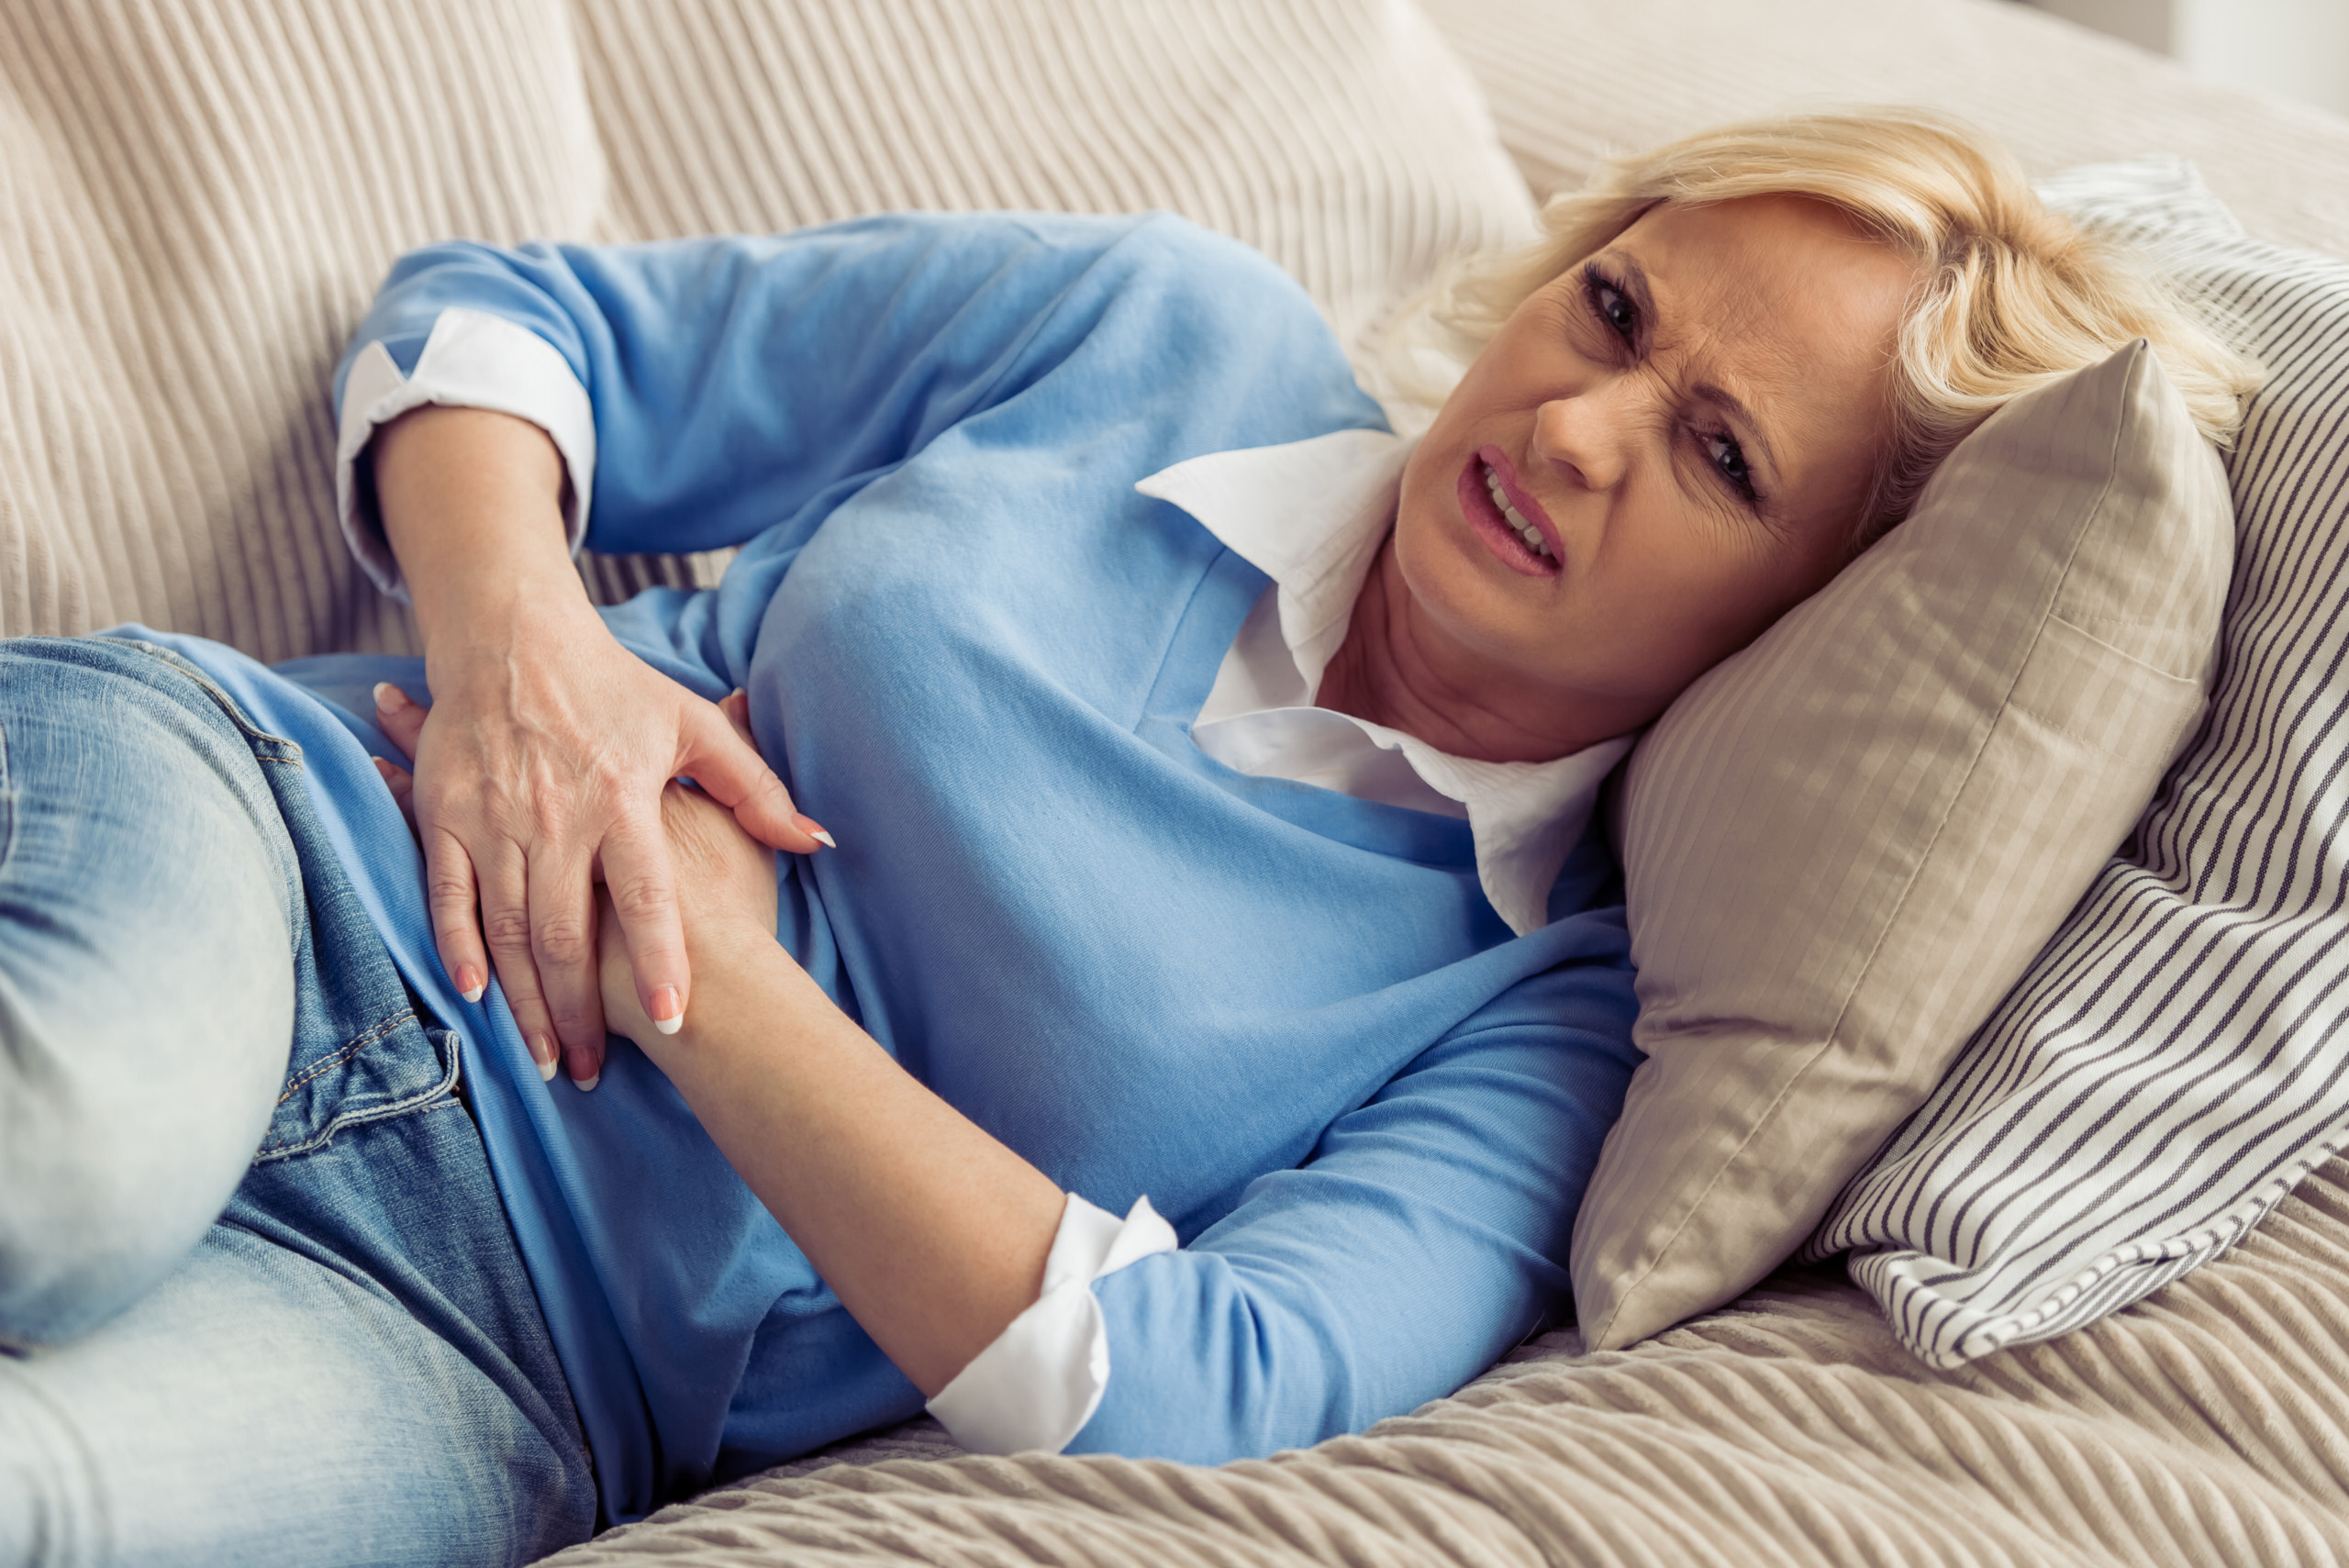 Does Colon Cancer Always Cause Abdominal Pain?